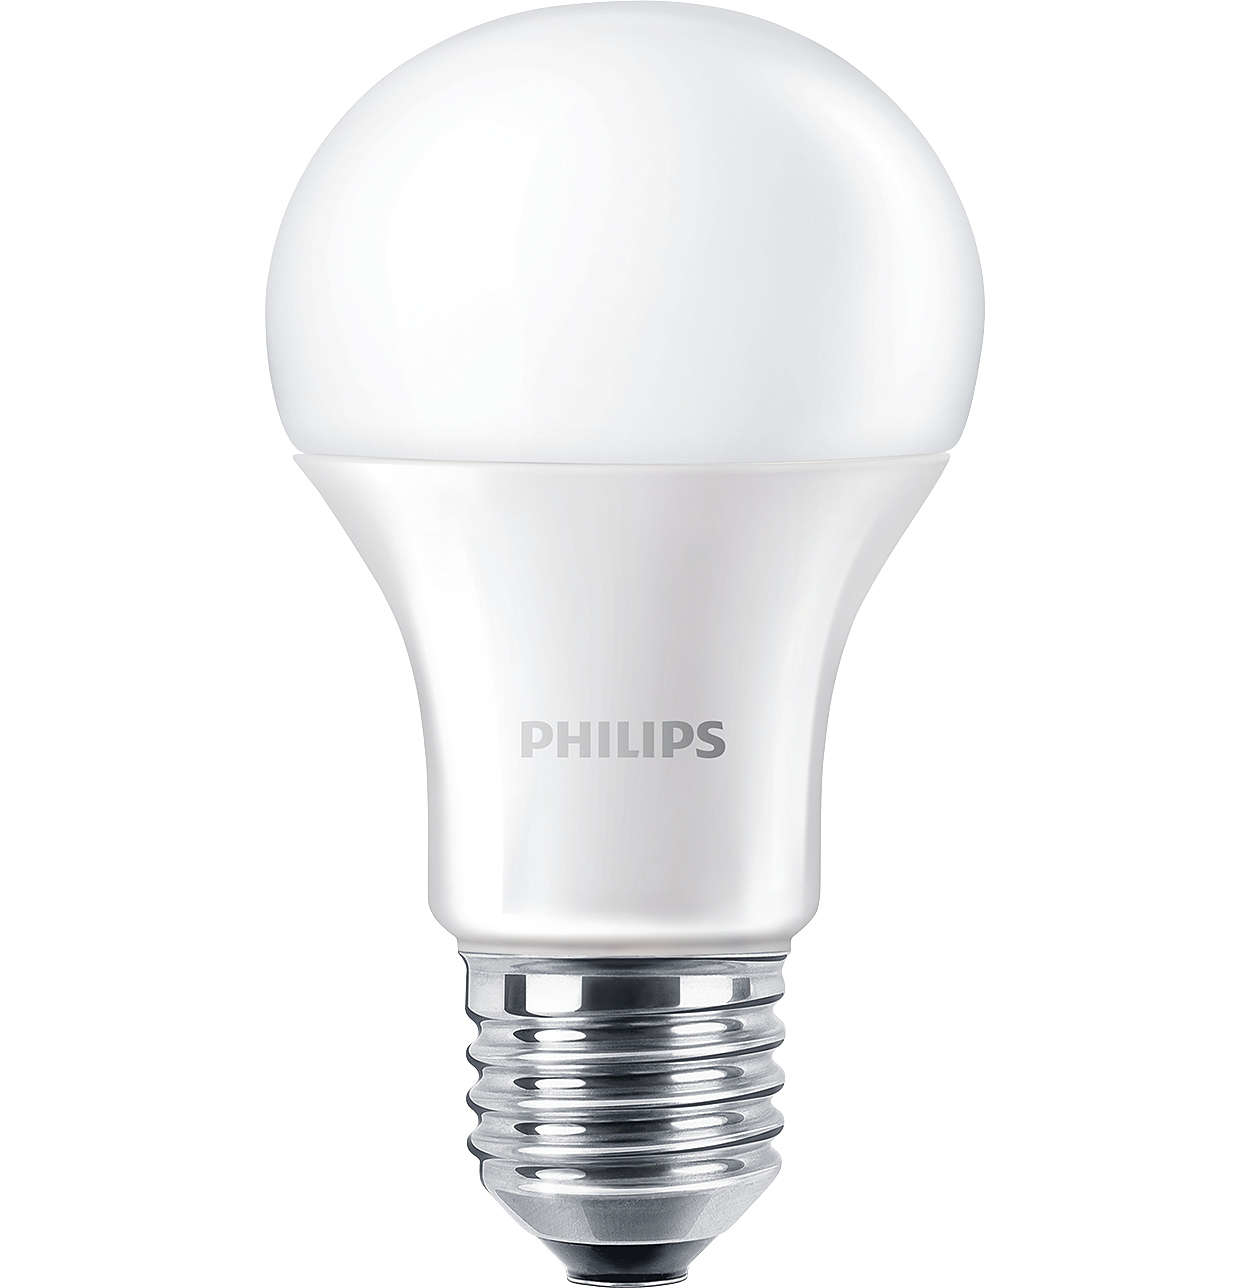 Philips Lampadina a LED - Lampadina LED - Core60840